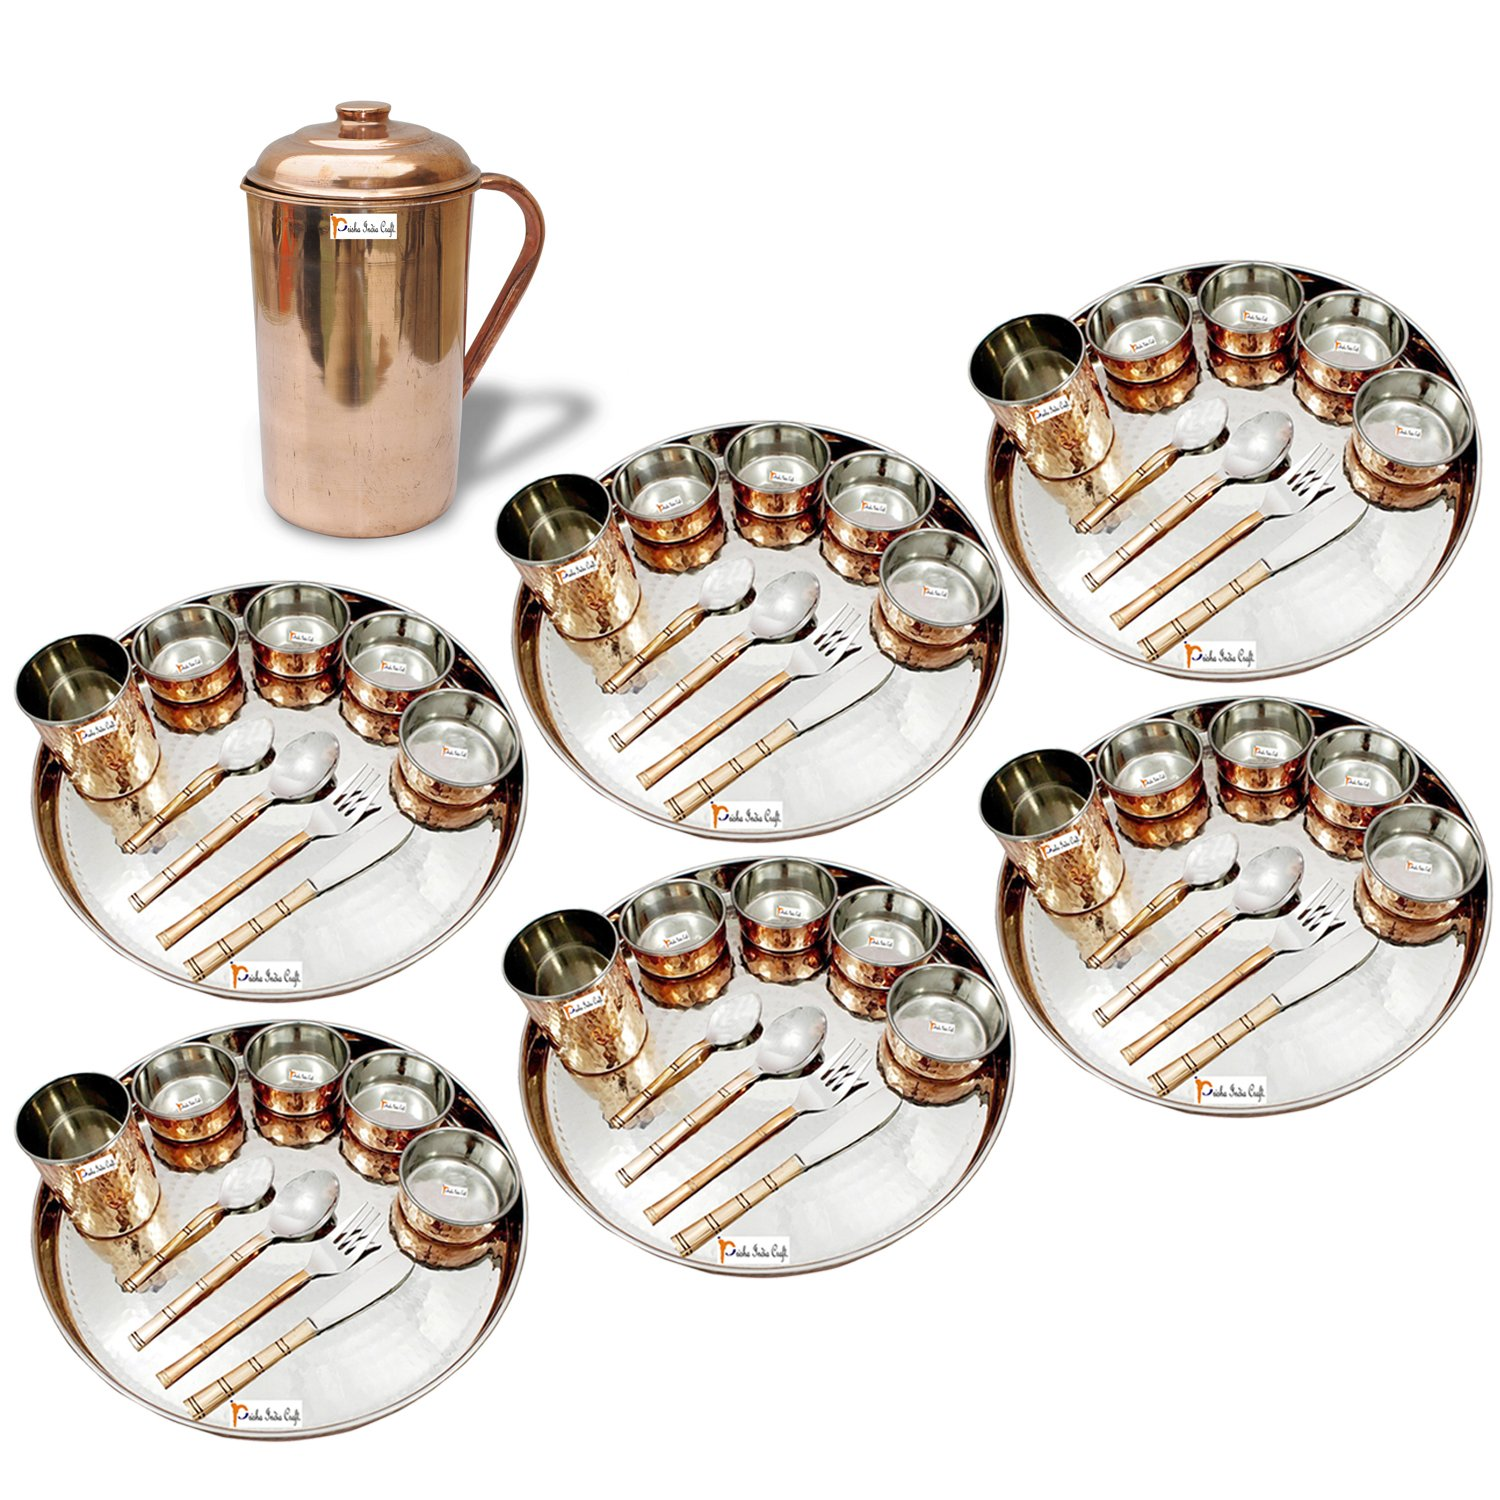 Prisha India Craft ® Set of 6 Dinnerware Traditional Stainless Steel Copper Dinner Set of Thali Plate, Bowls, Glass and Spoons, Dia 13'' With 1 Pure Copper Pitcher Jug - Christmas Gift